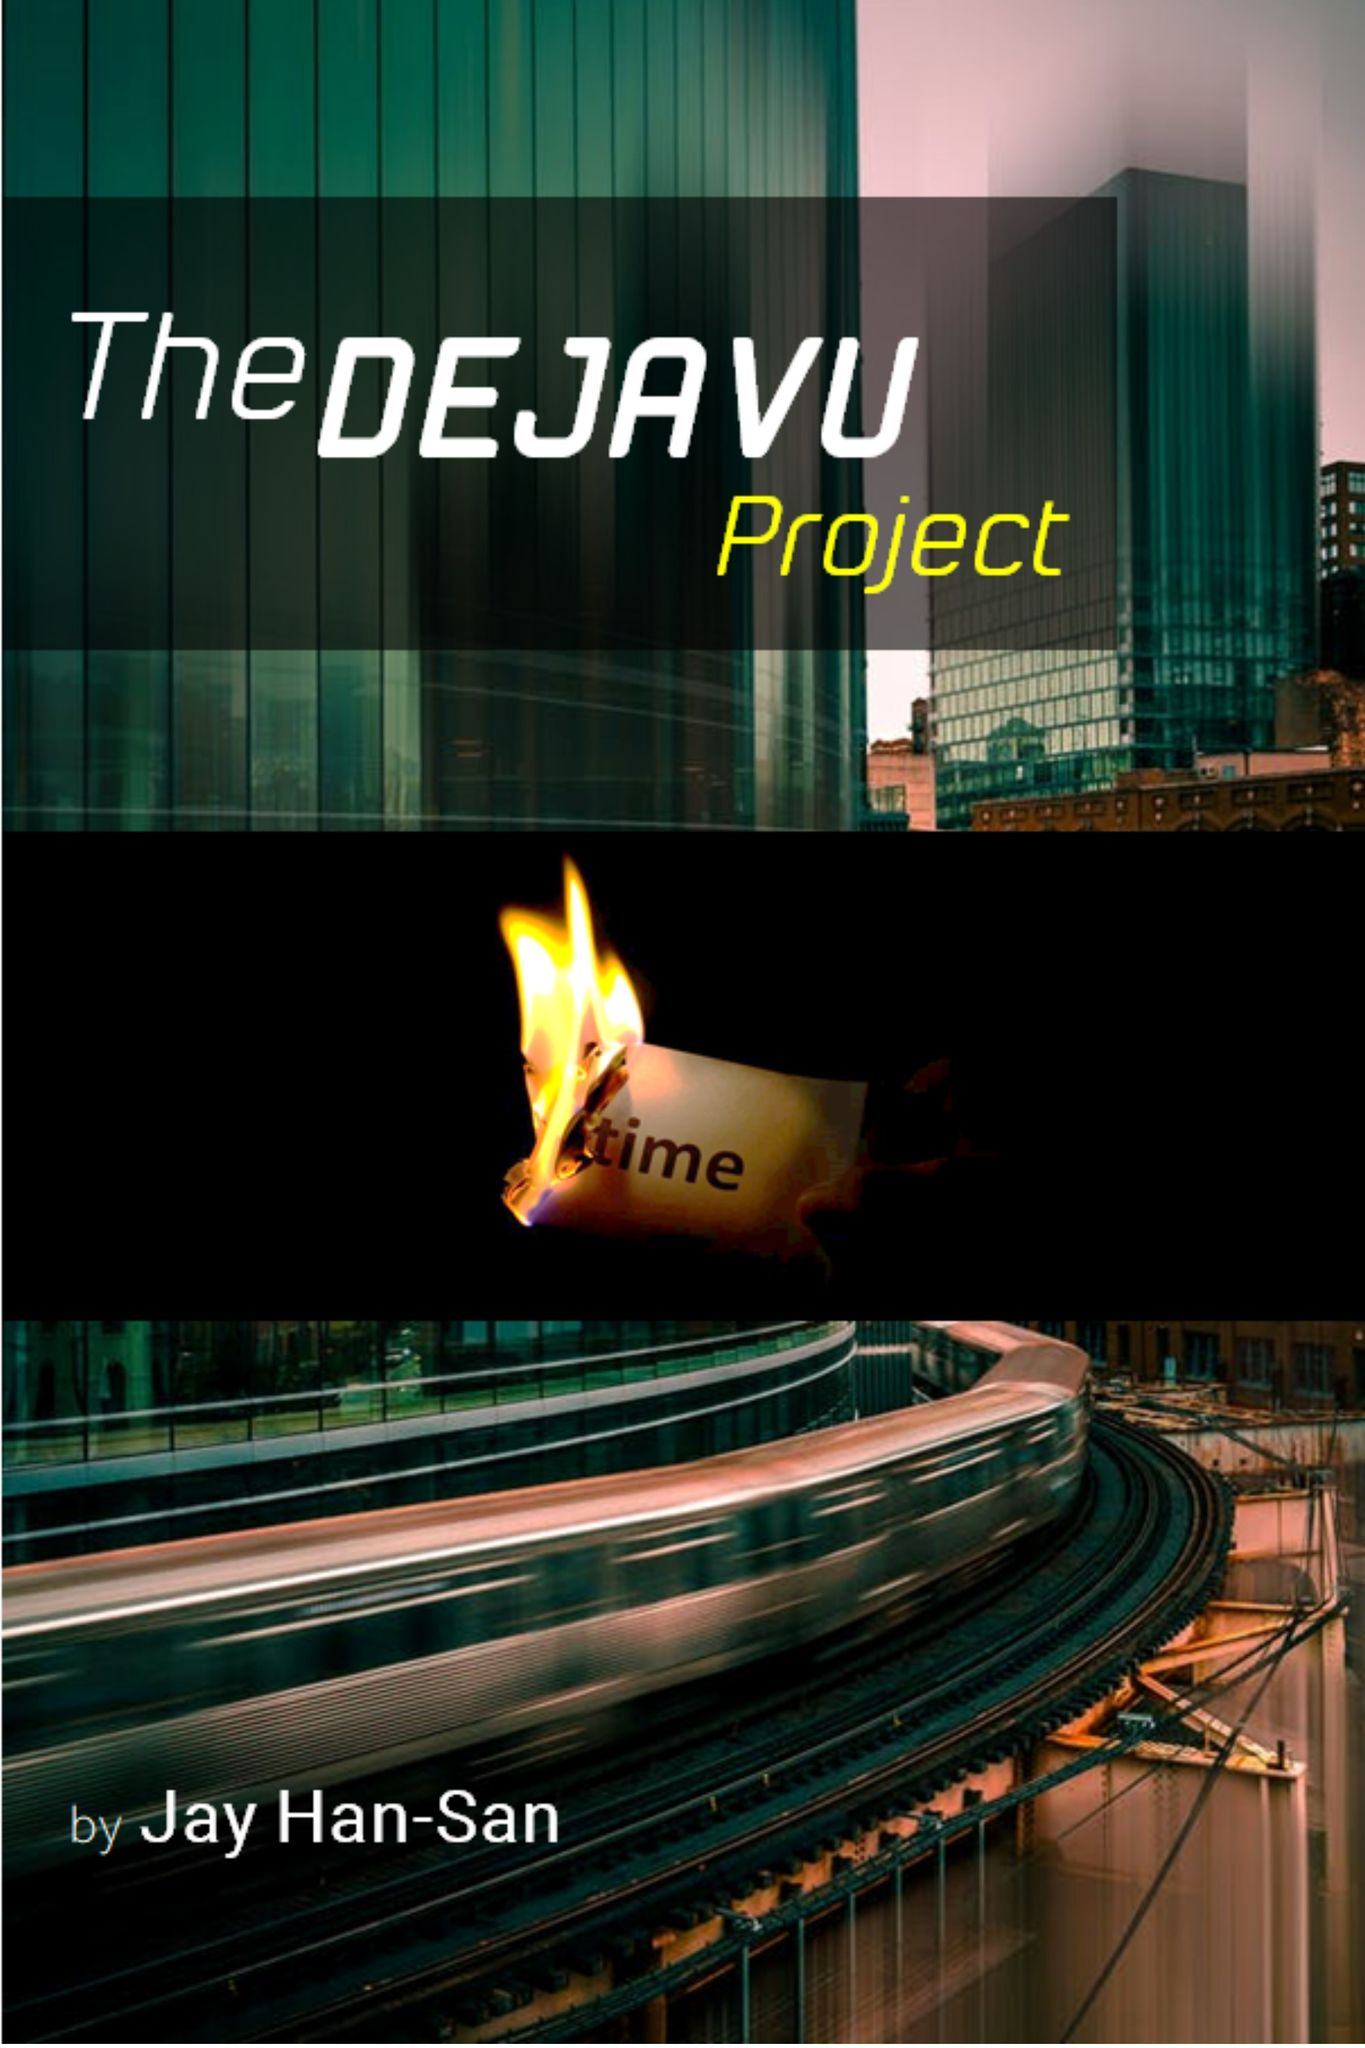 THE DEJAVU PROJECT